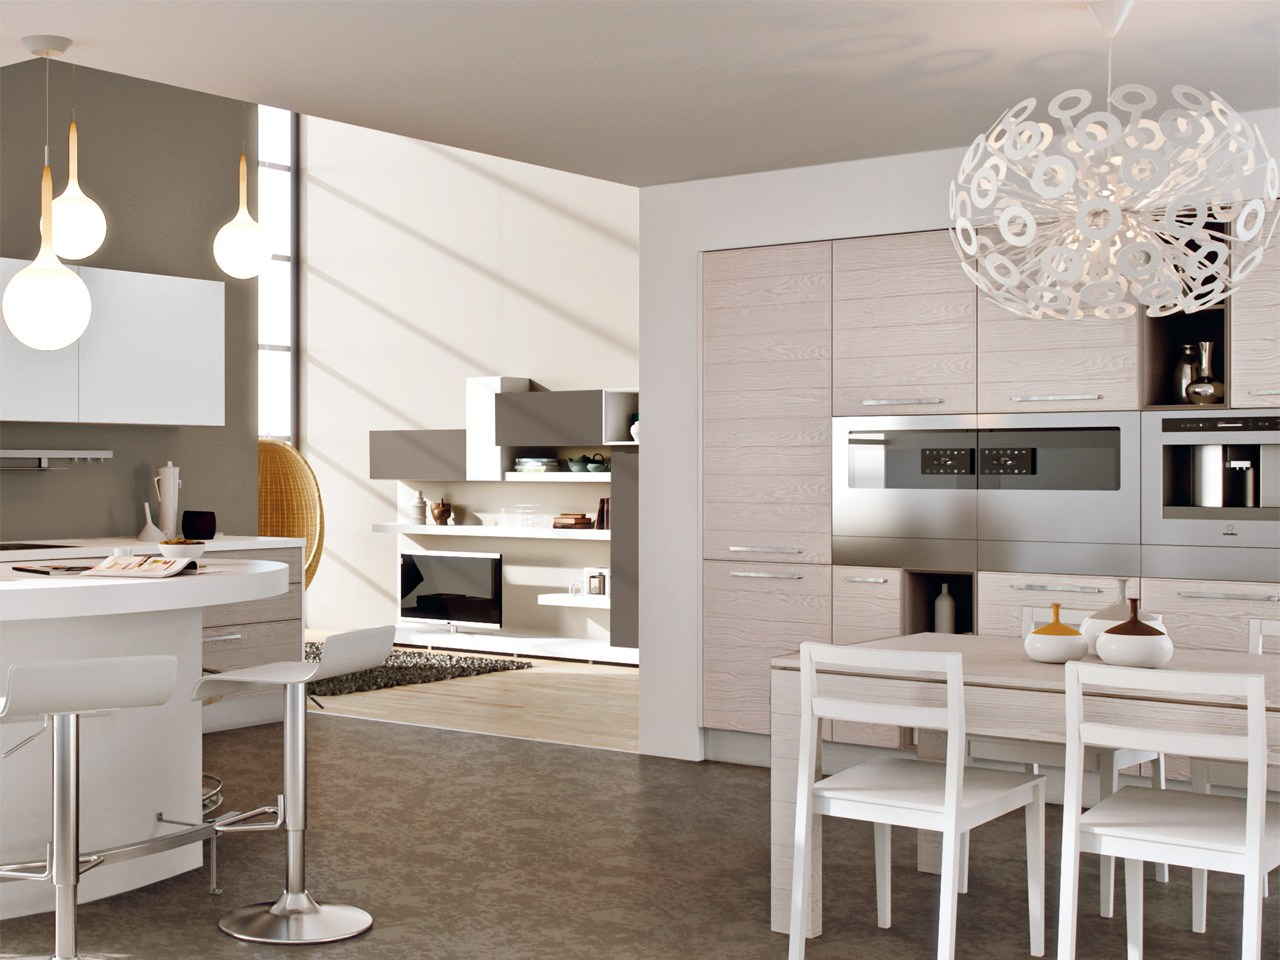 ADELE PROJECT Kitchen by Cucine Lube